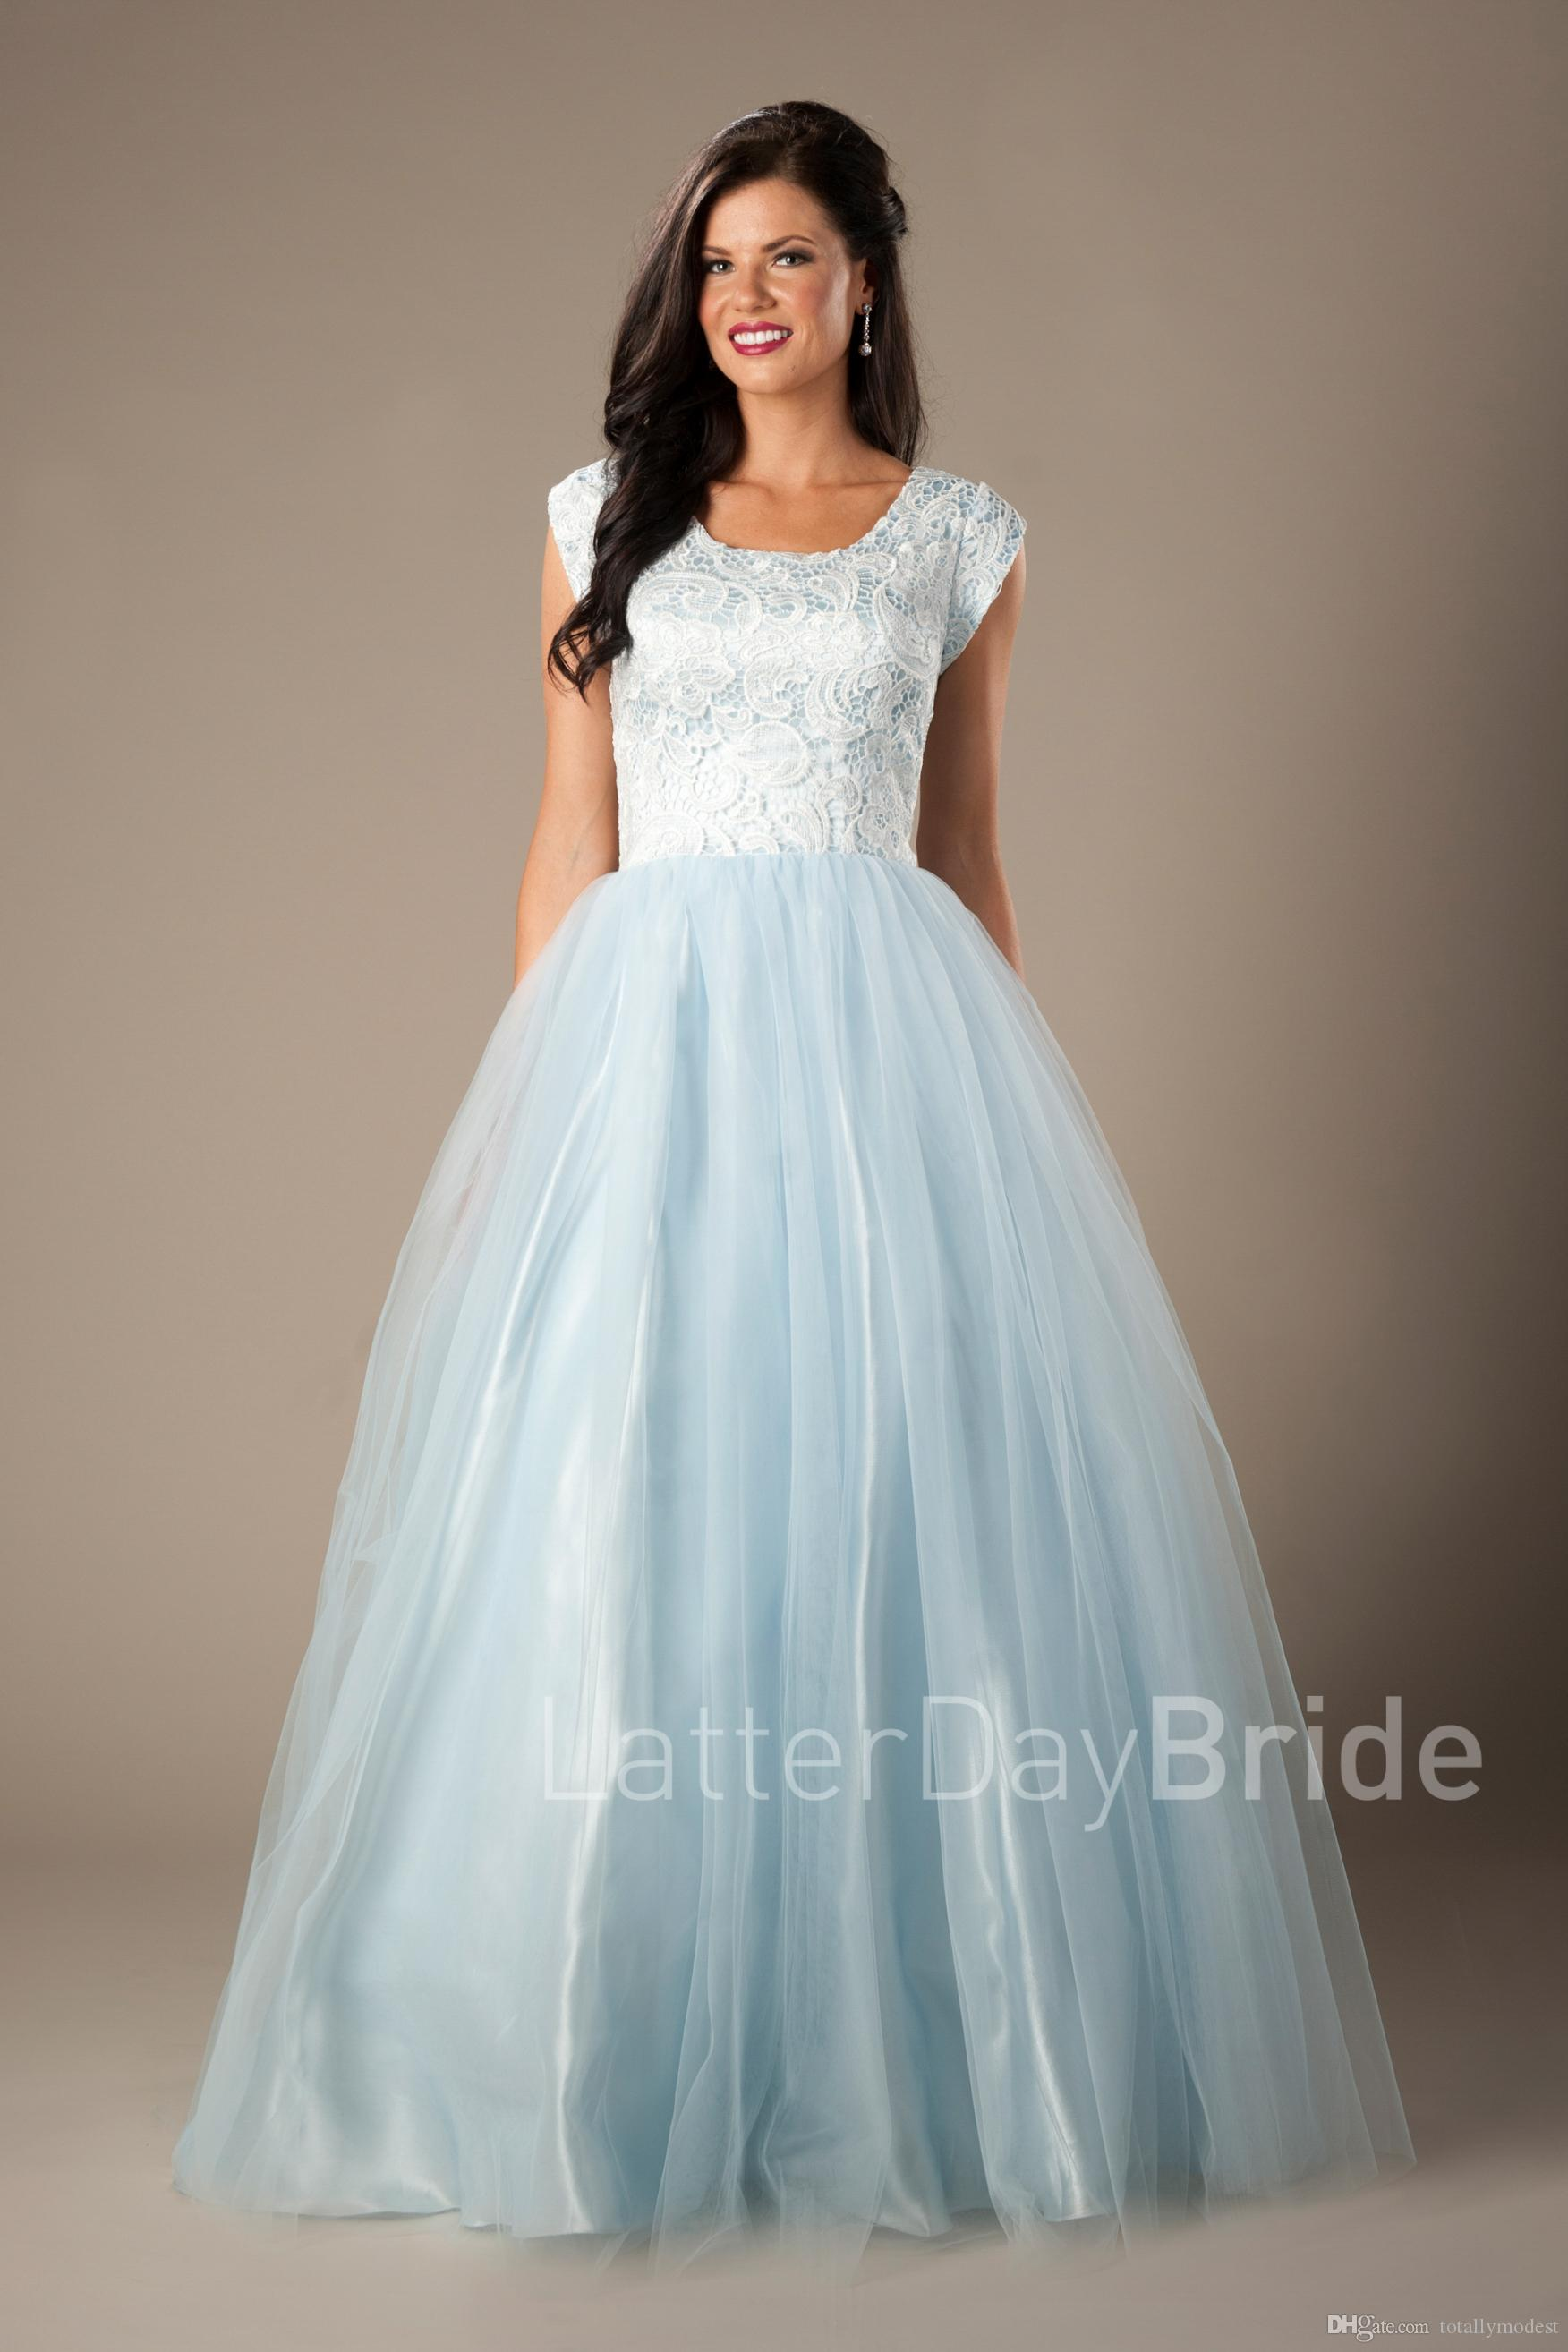 Simple Blue Ivory Lace Tulle Prom Dresses Long Modest With Cap ...